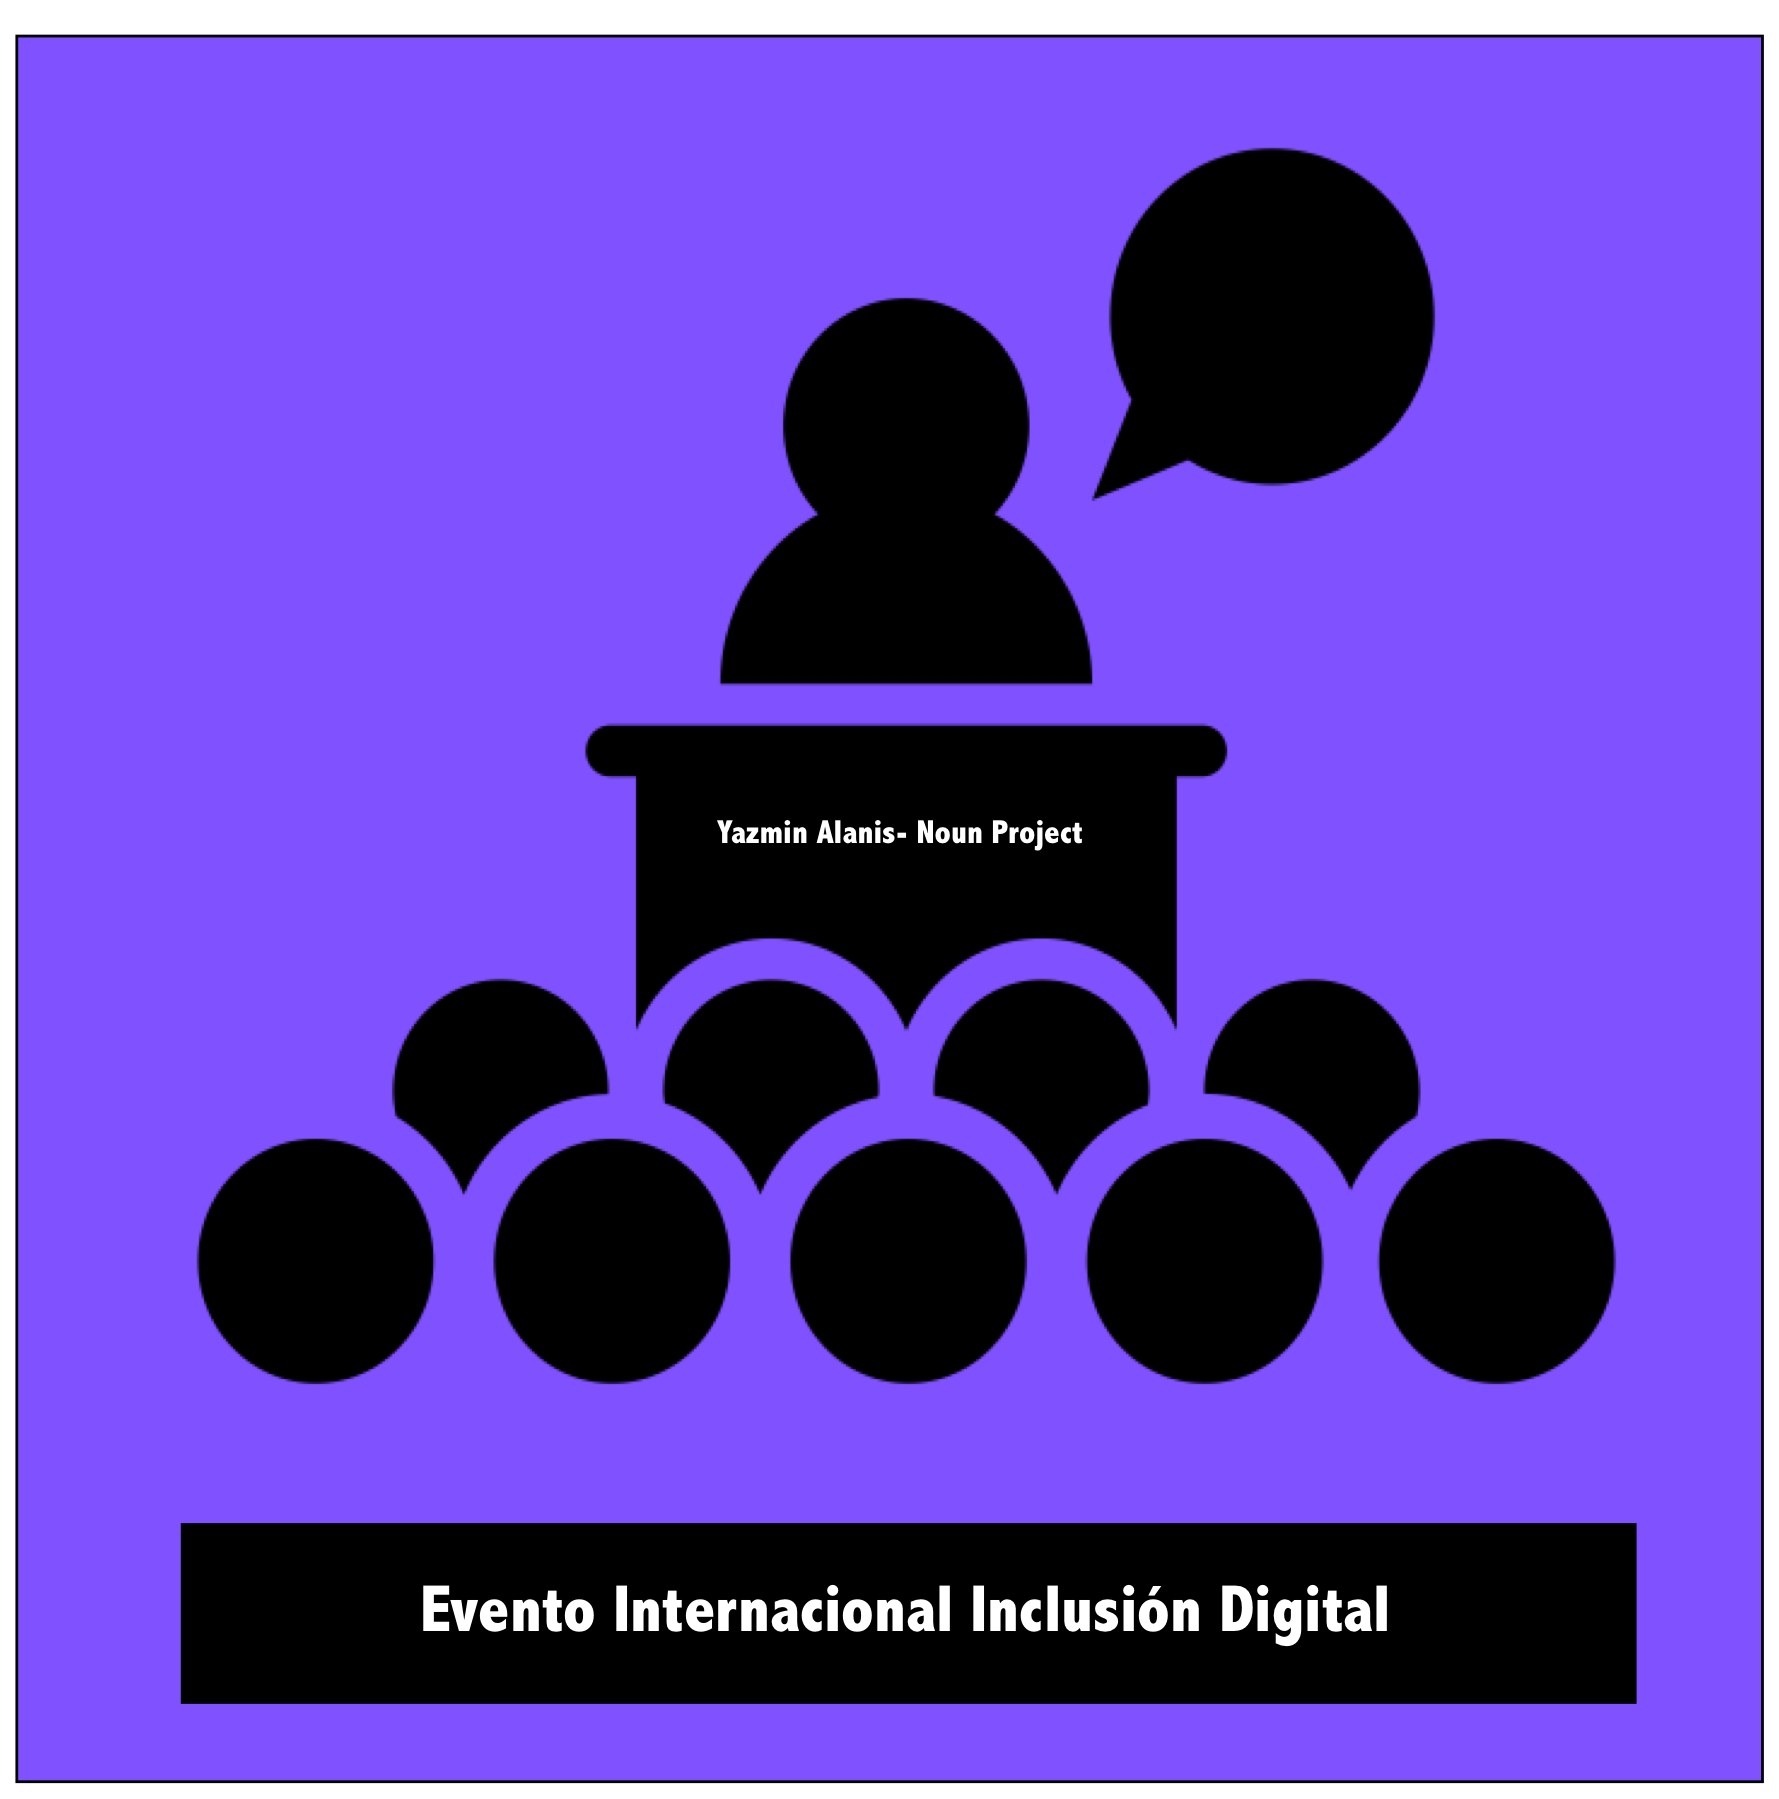 Evento Inclusion Digital